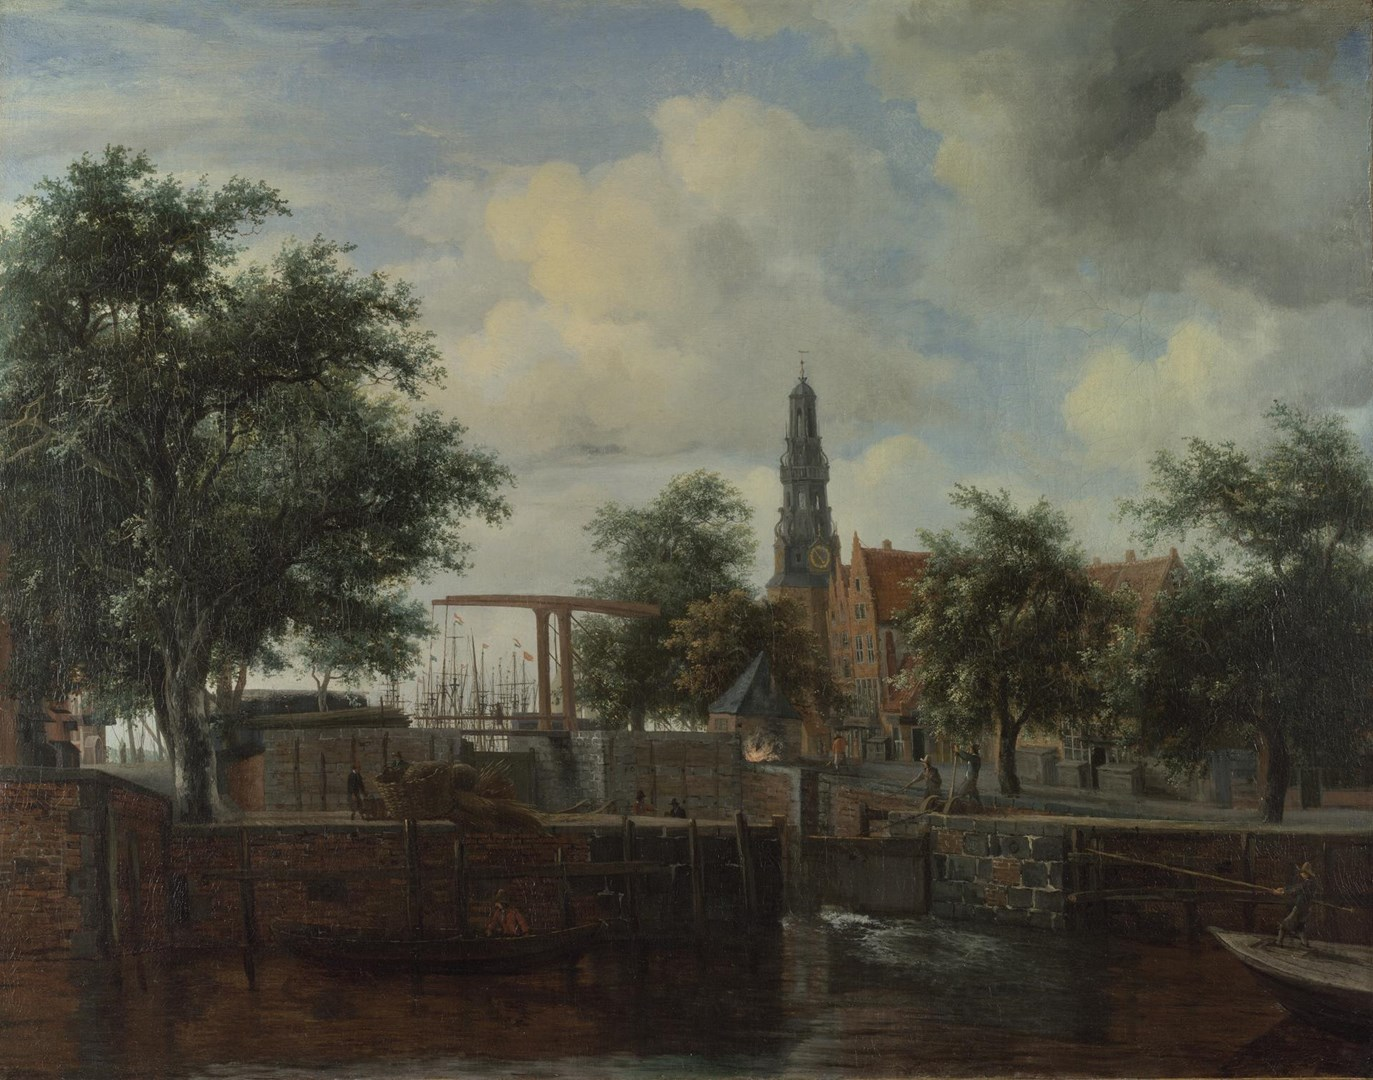 The Haarlem Lock, Amsterdam by Meindert Hobbema